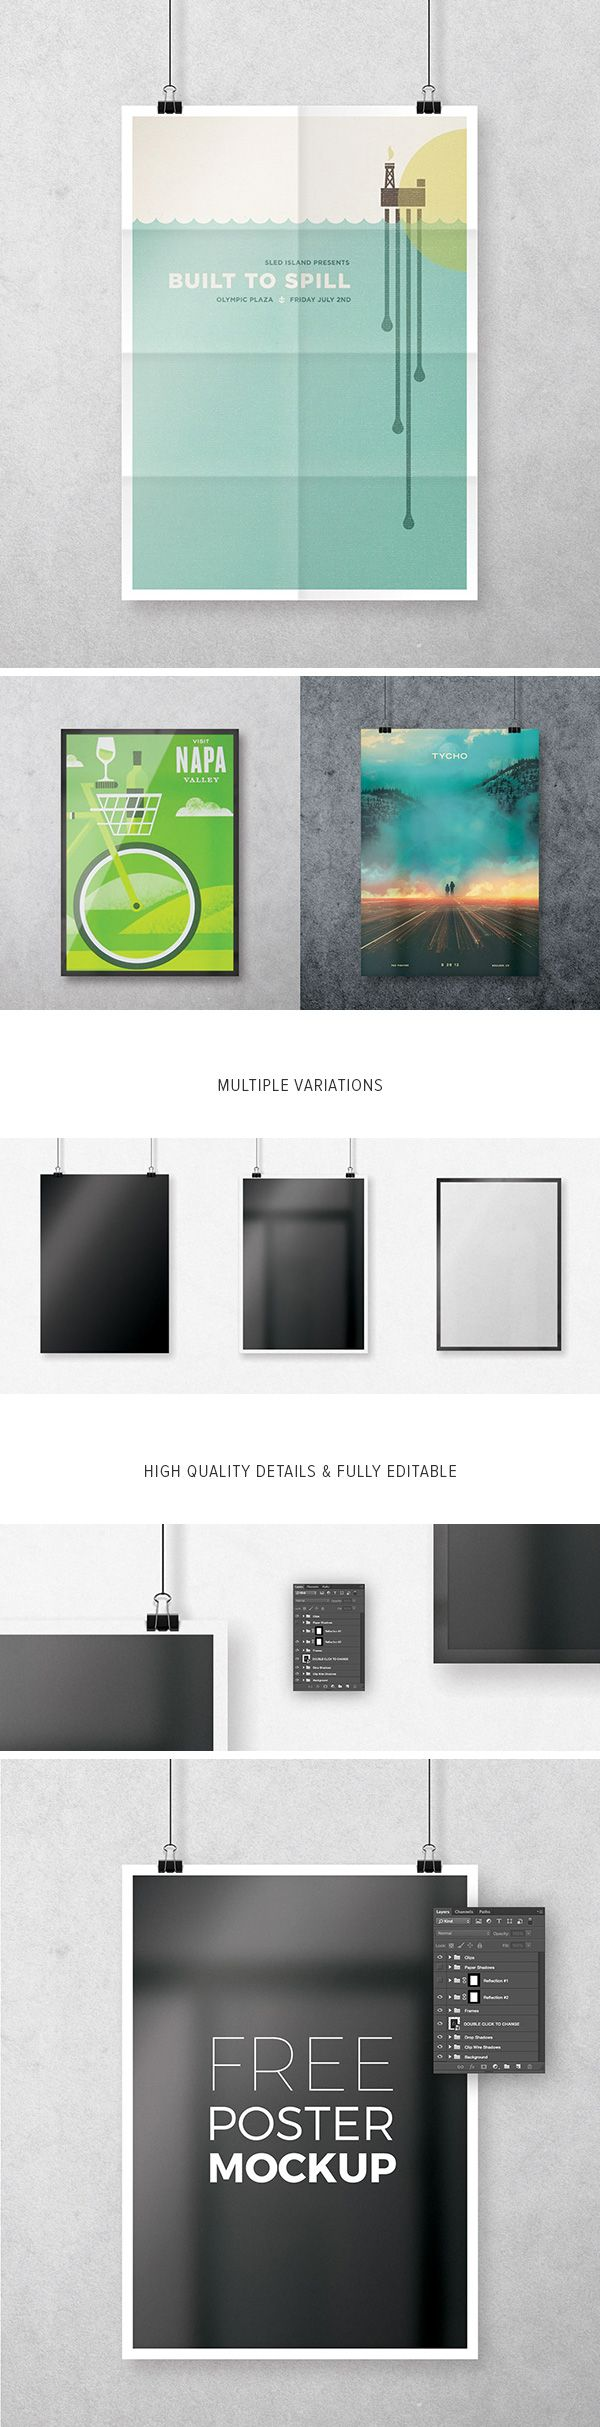 Showcase your posters, pictures, artwork or any other design with high resolution A4 Poster ‪PSD‬ ‎Mockup‬ ‎FREE‬ download. Have fun with it!